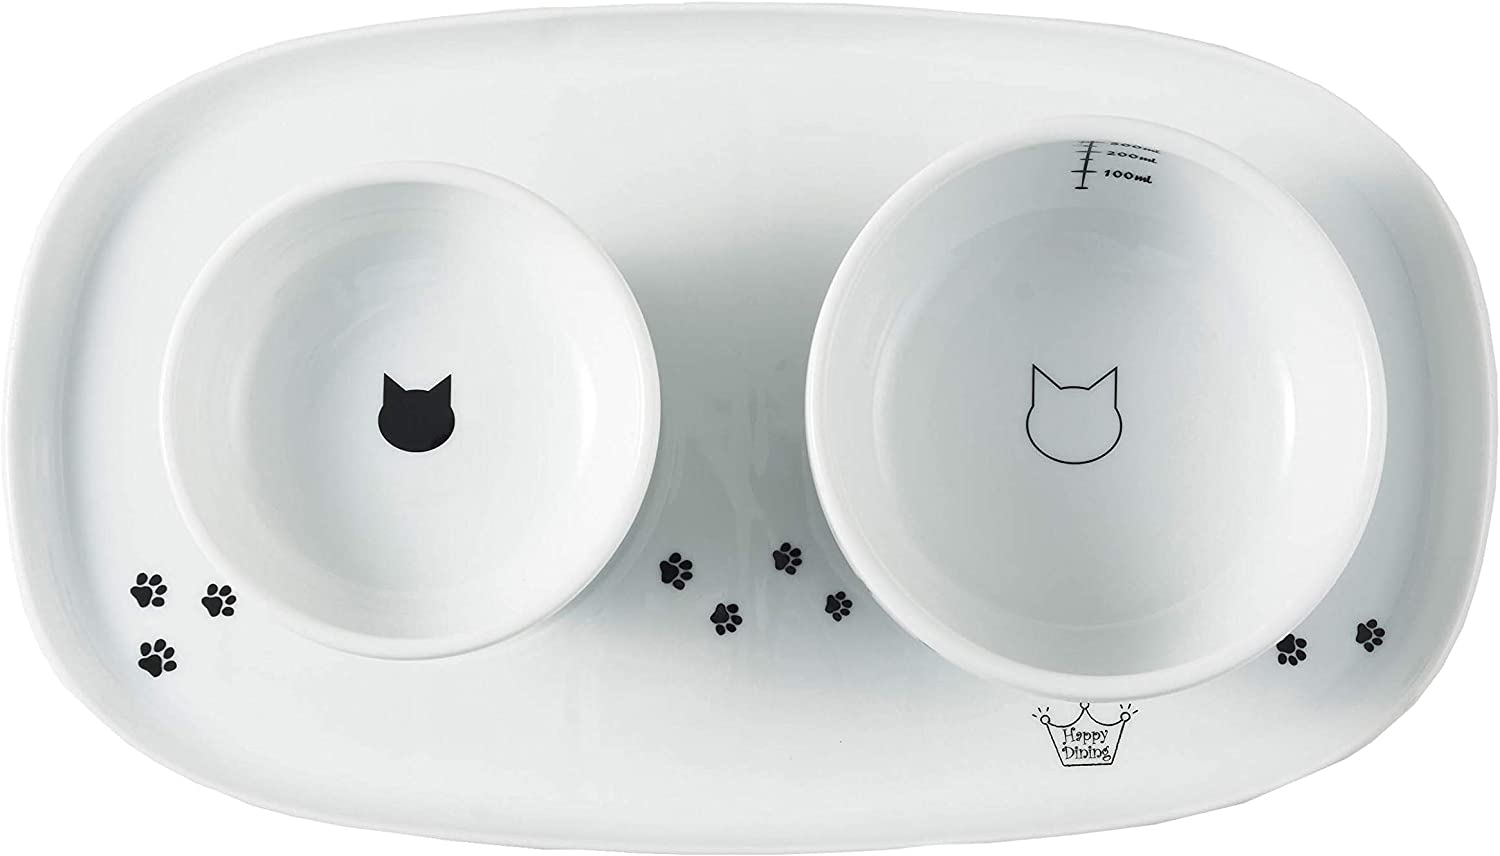 Necoichi Raised Cat Food Bowl, Stress Free, Backflow Prevention, Dishwasher and Microwave Safe, Lead & Cadmium Free, Made to FDA/EC&ECC European Standard (Cat, Complete Set)